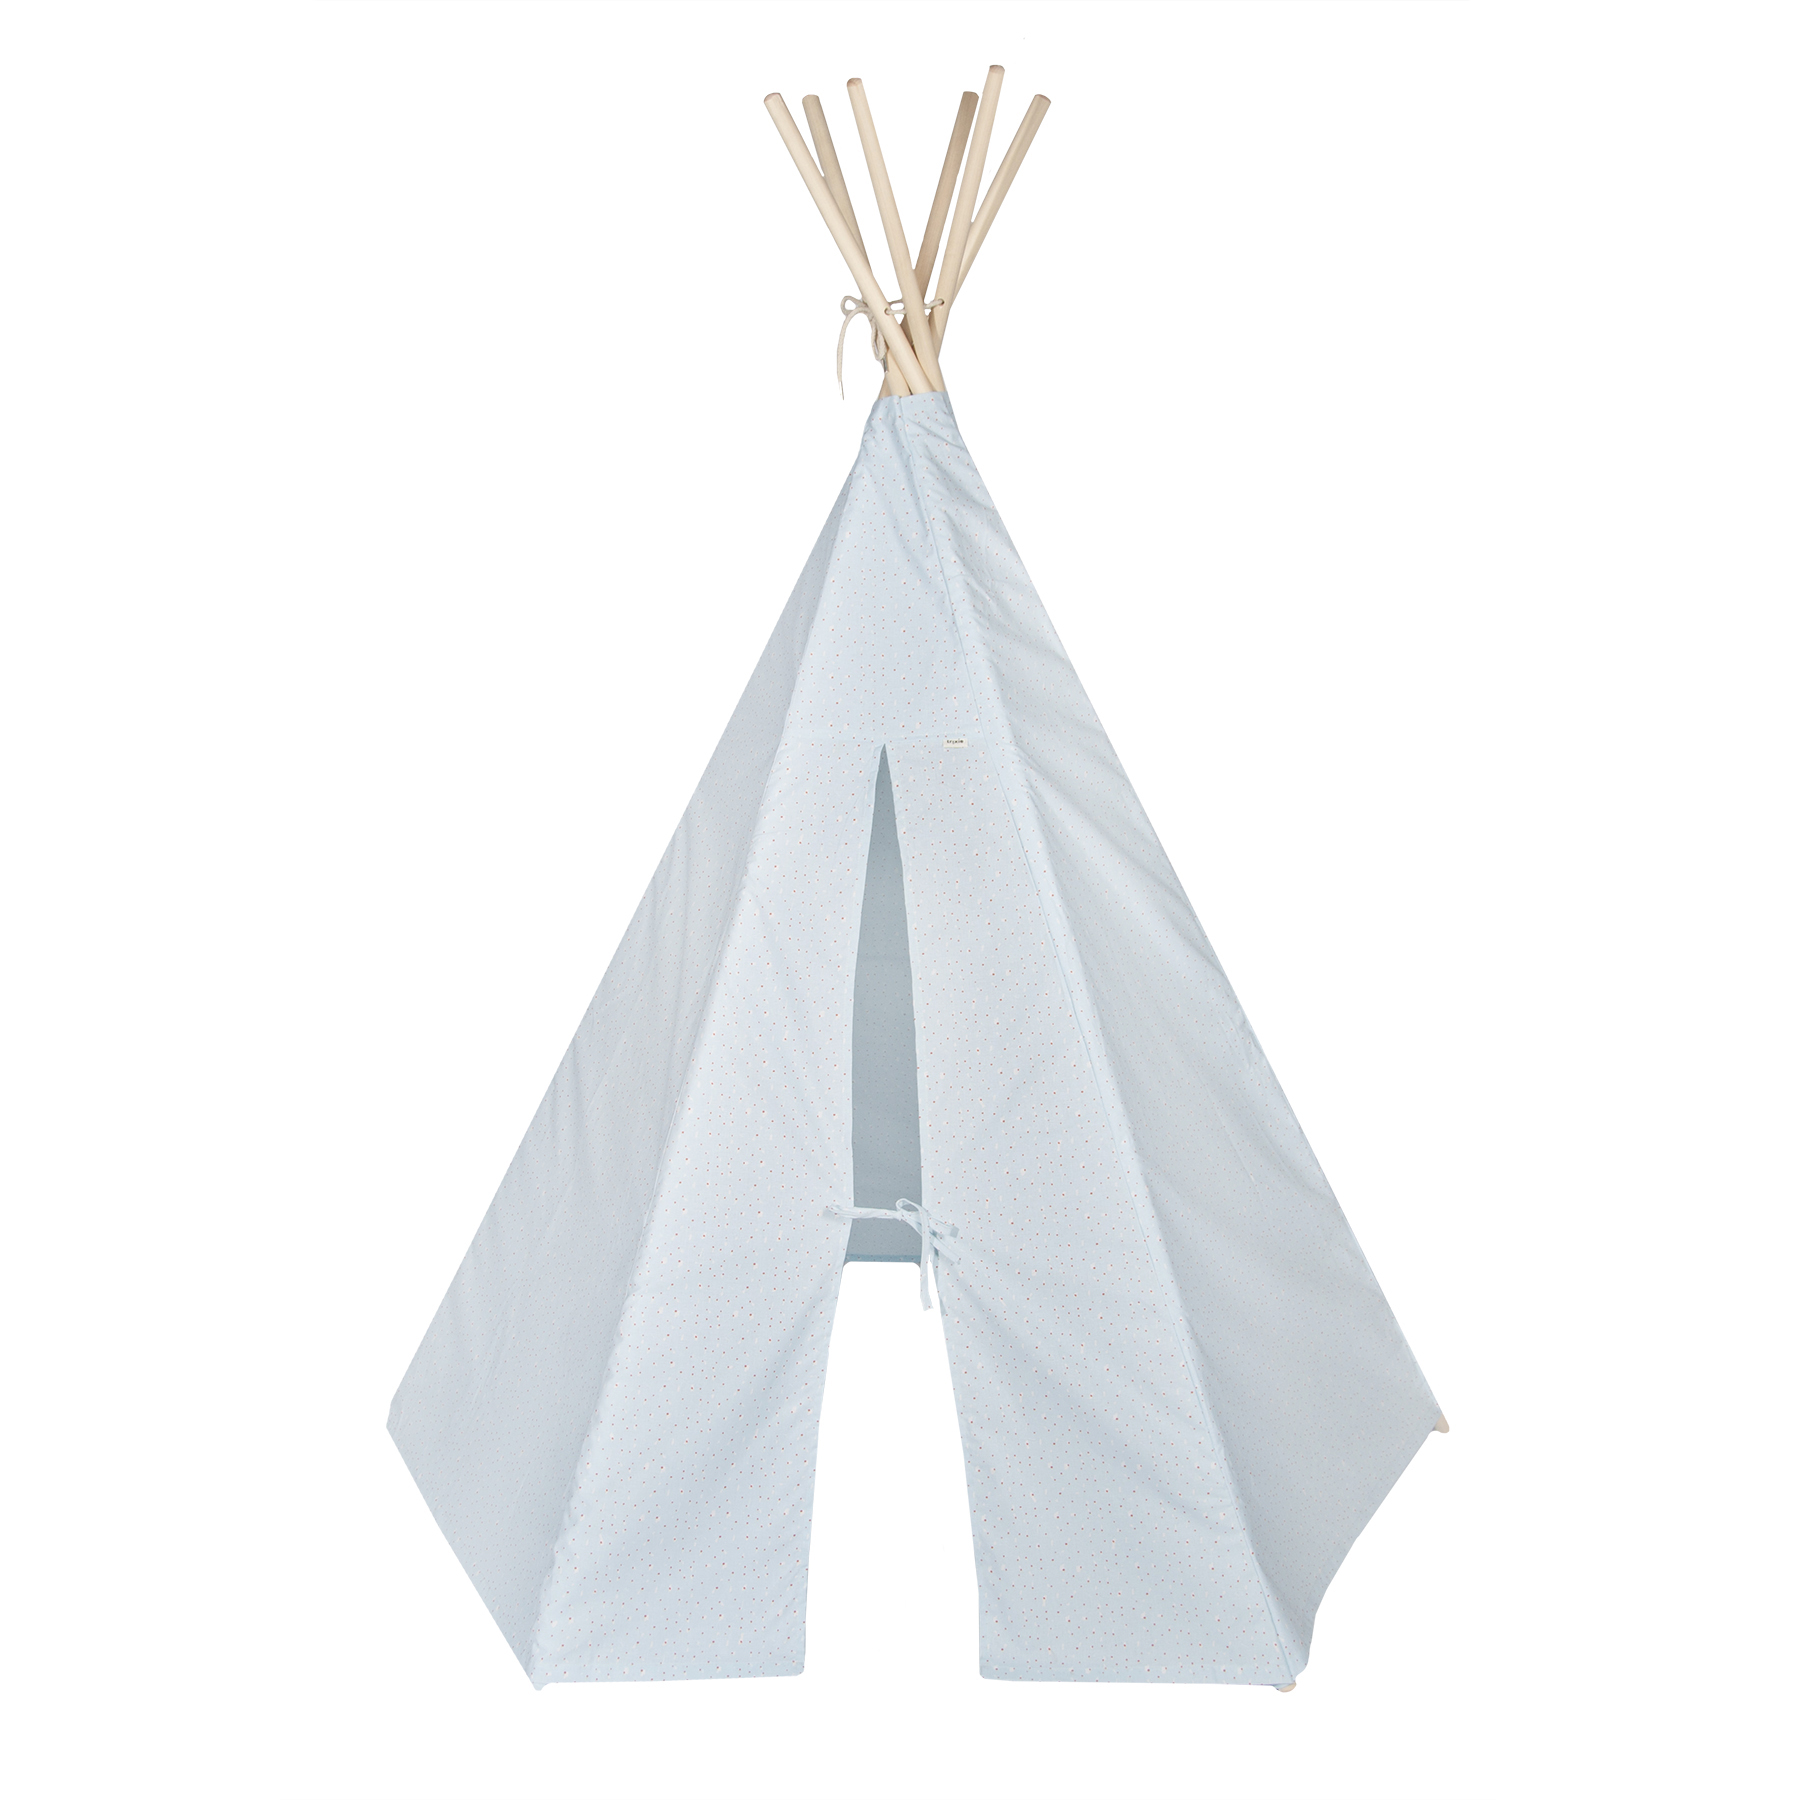 Trixie Freckles Tipi Tent